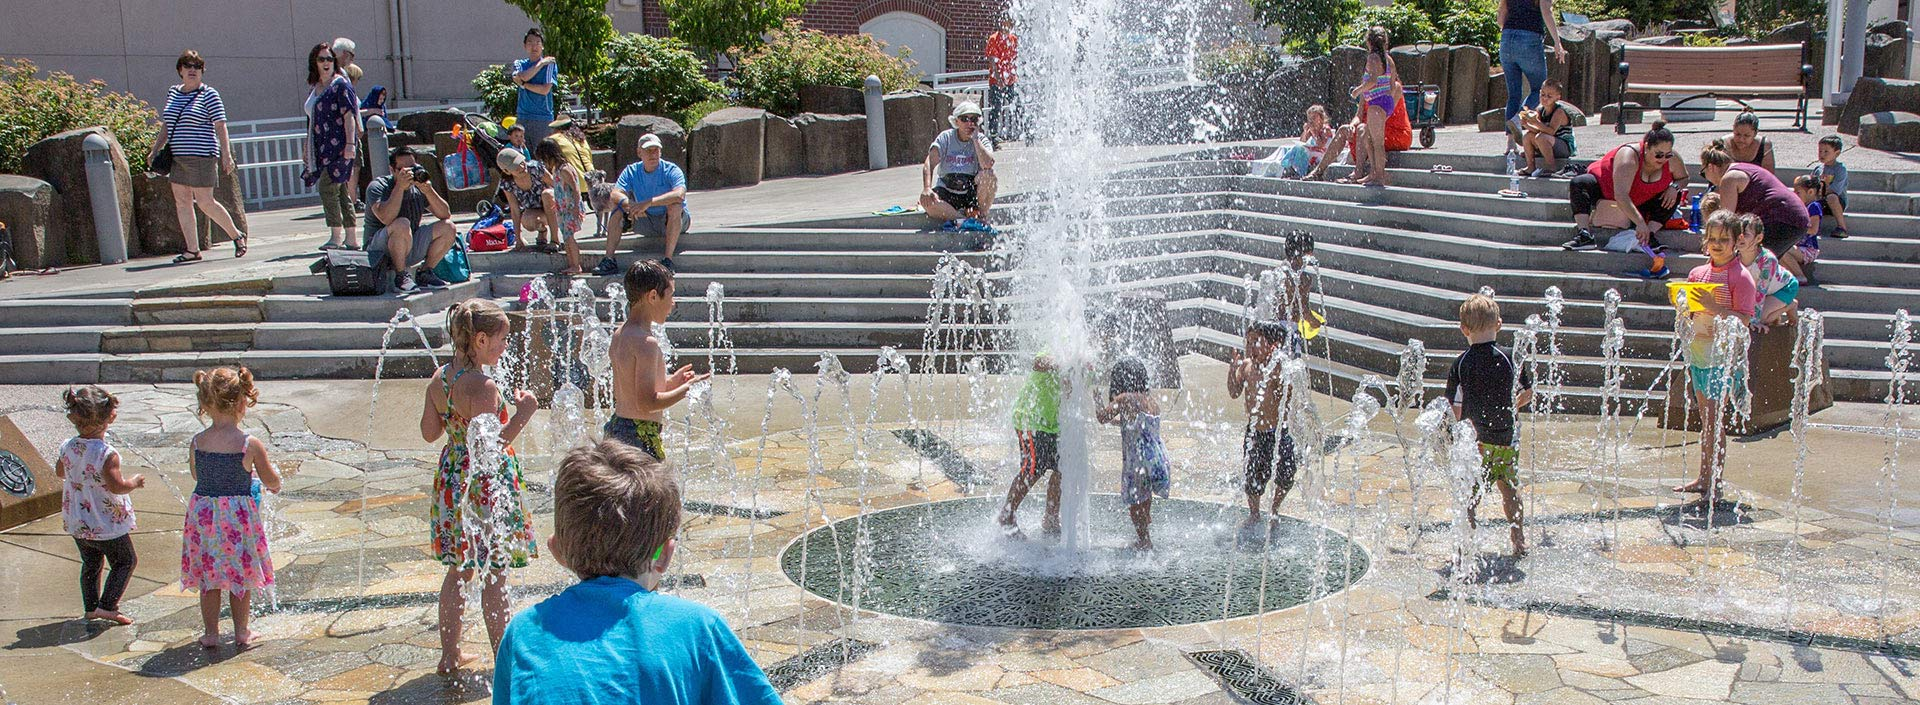 Children play at the Civic Center Fountain and sprayground